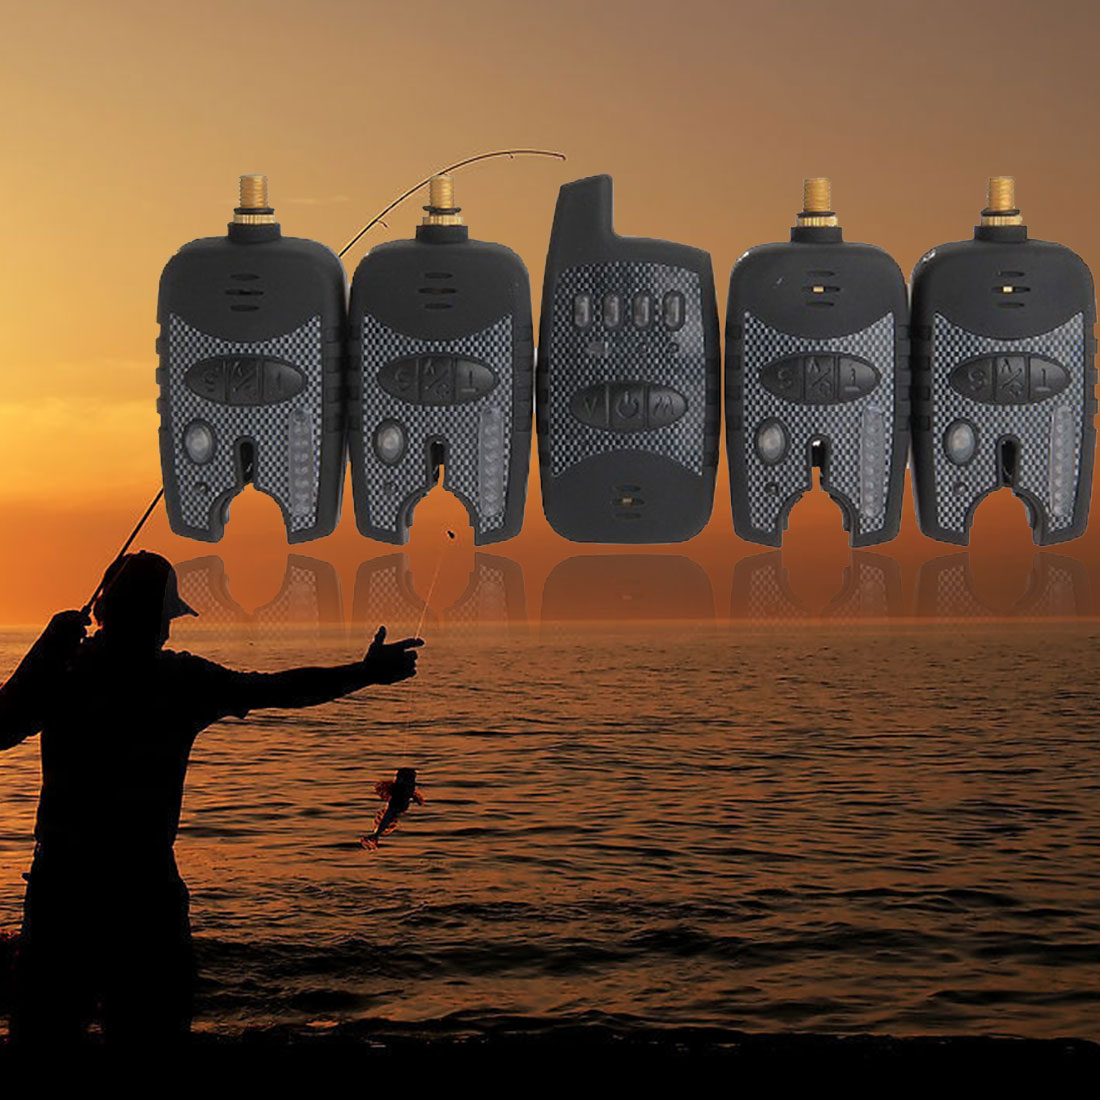 2018 Hot Sale New Fishing Tackle Set 4 PCS Wireless pesca Carp Bite Alarm Alert + Receiver 2018 new durable set 4 pcs wireless blue led fishing pesca bite alarms receiver black